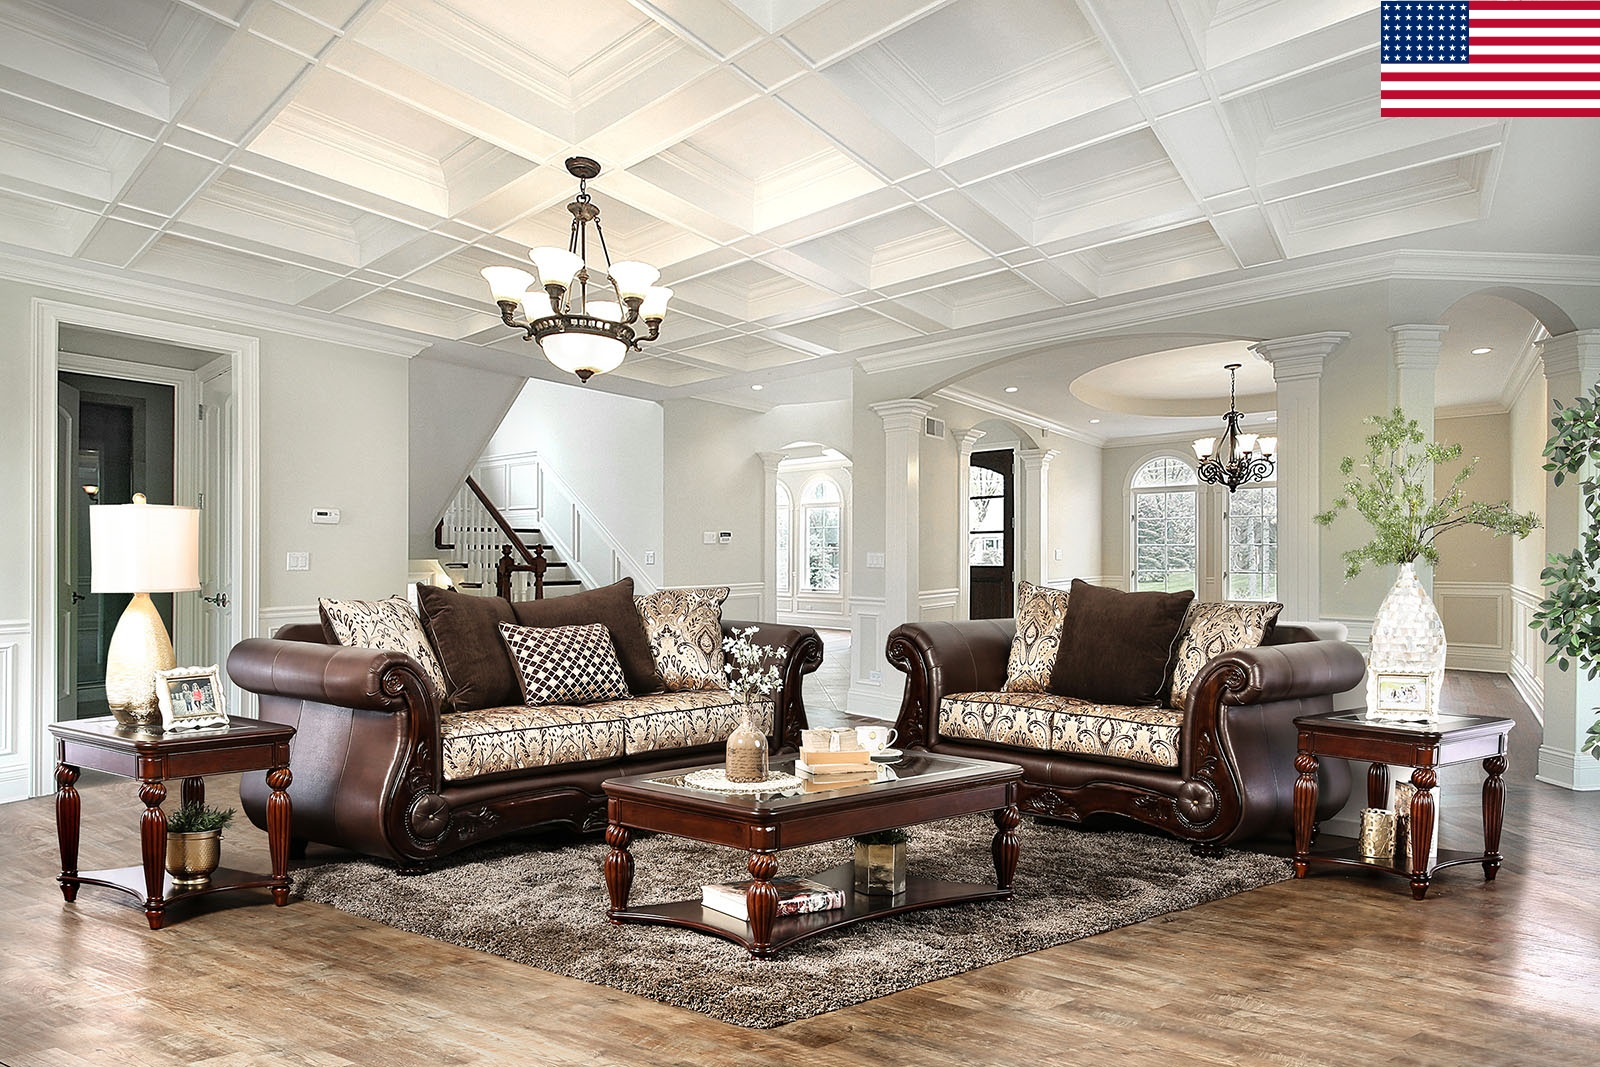 Formal Traditional Living Room Furniture 2pc Sofa Set Sofa Love Seat Brown  Rolled Arms Comfort